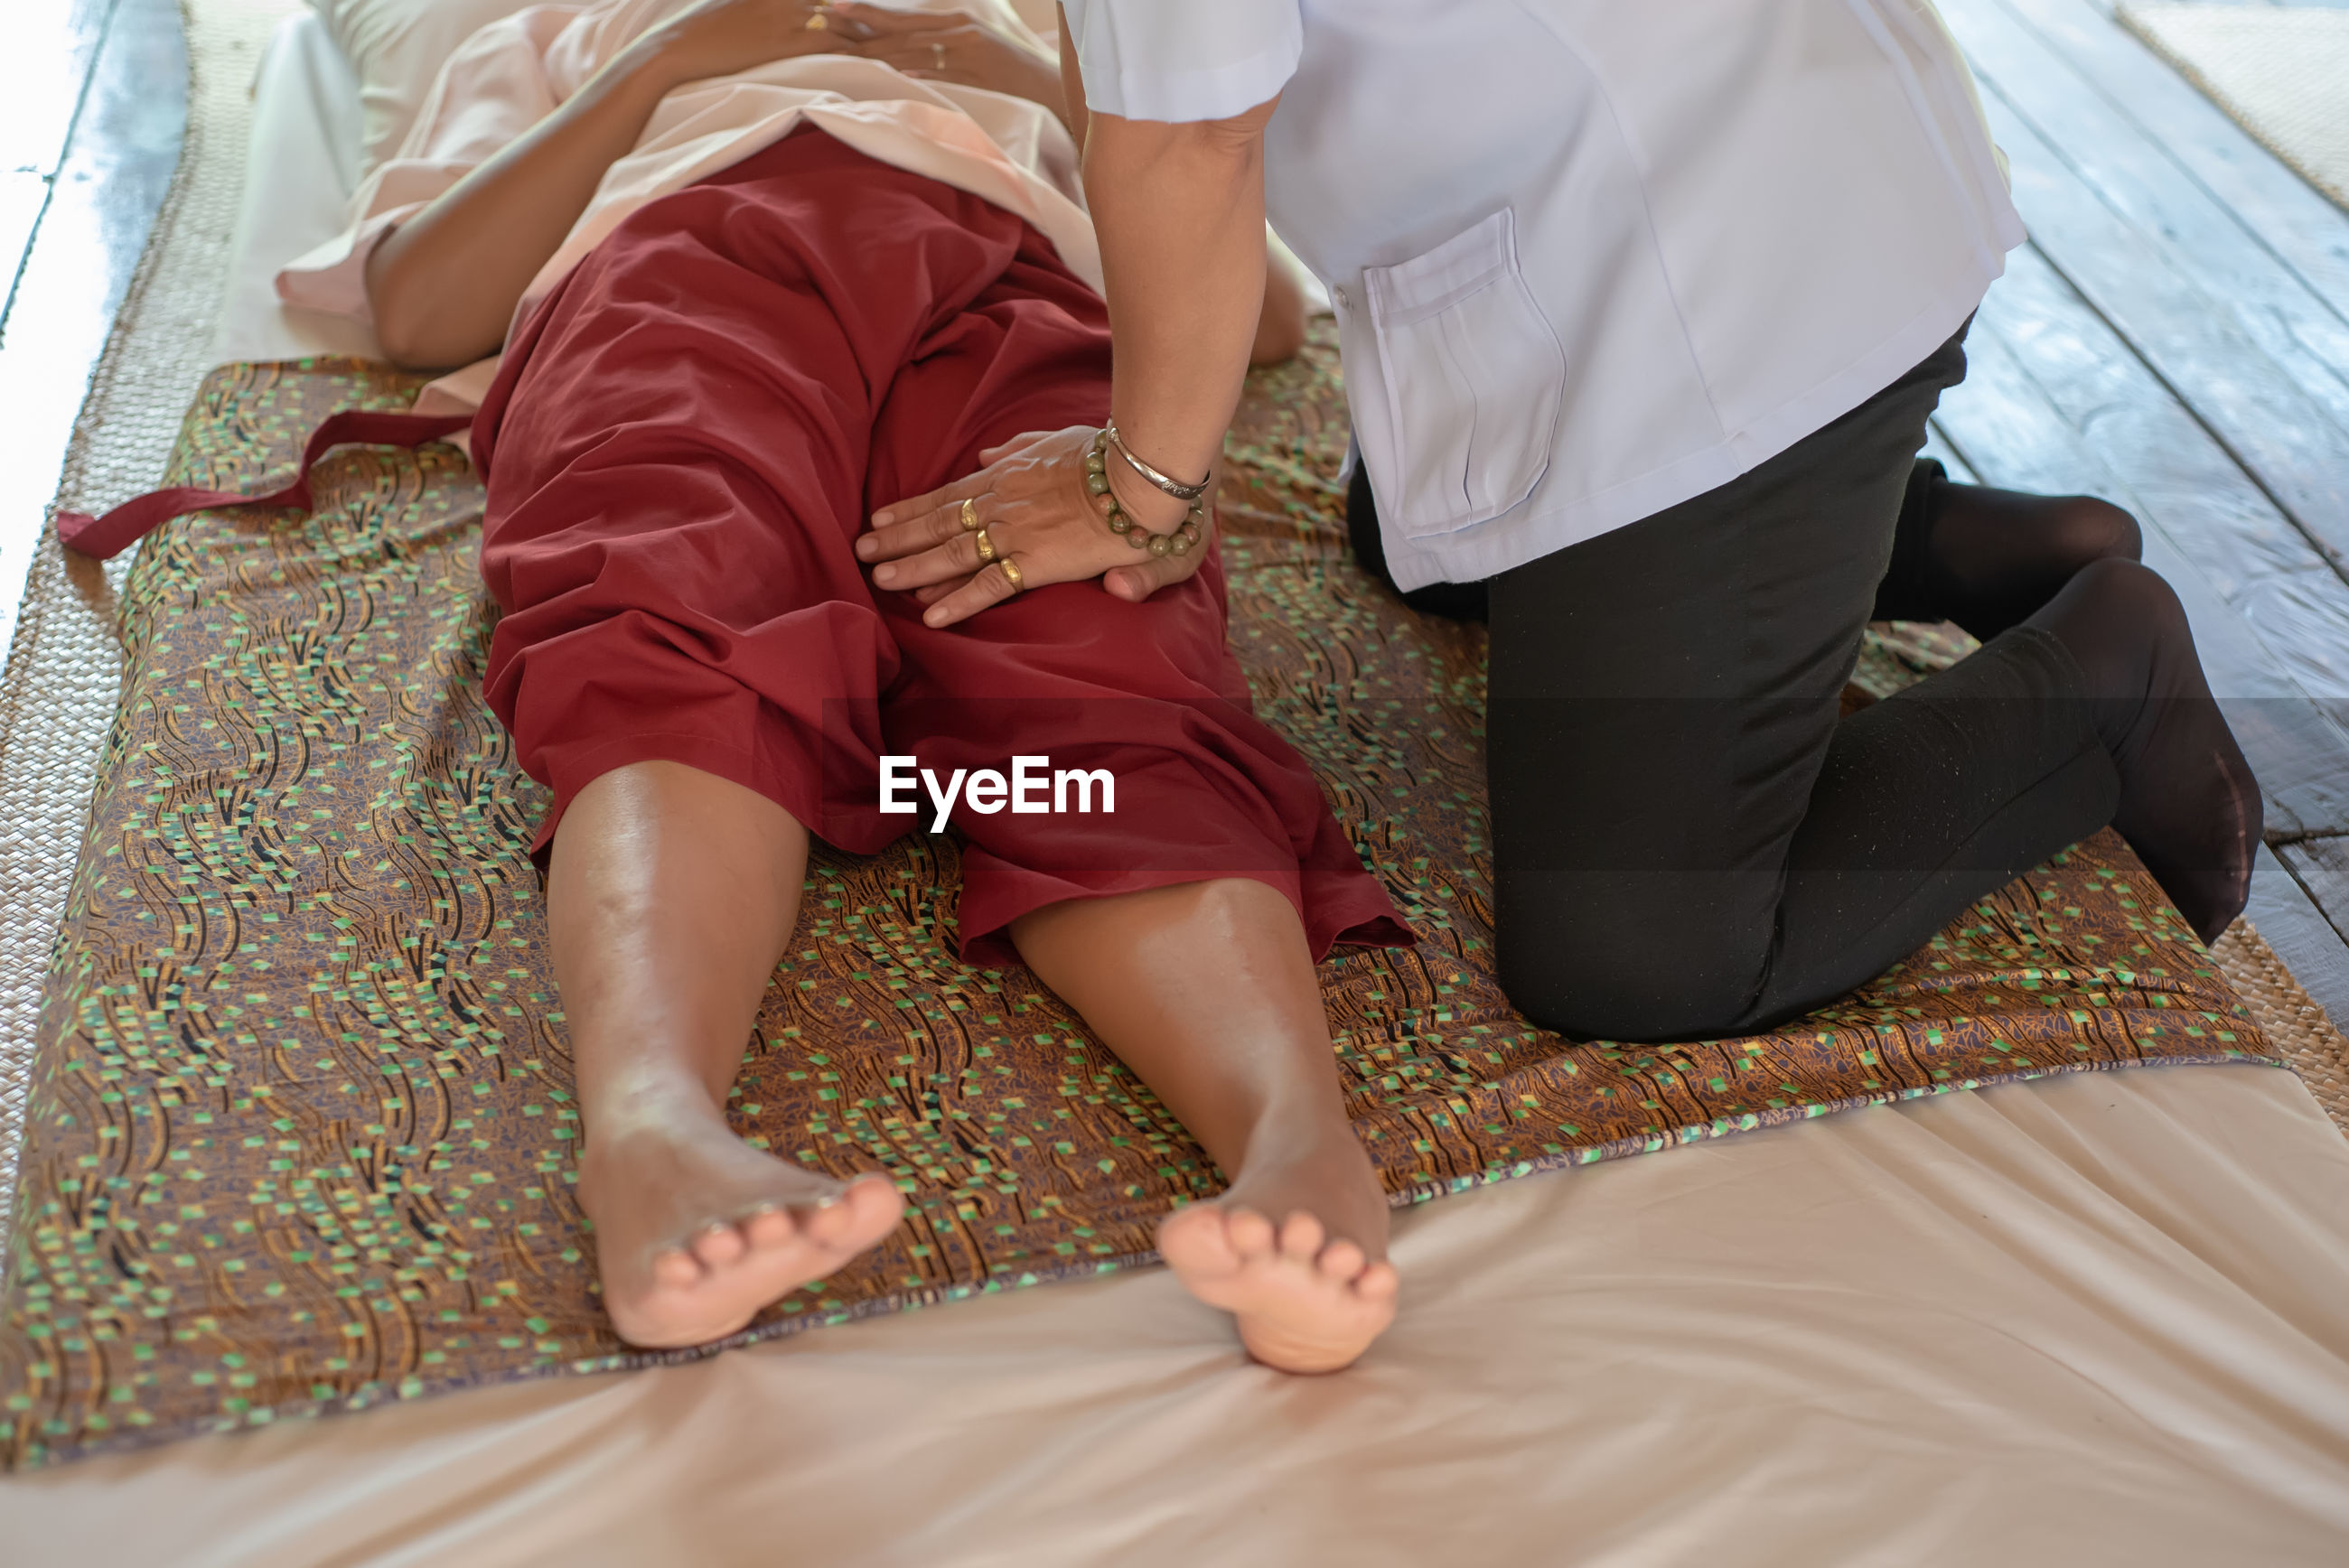 Low section of person giving therapy to woman